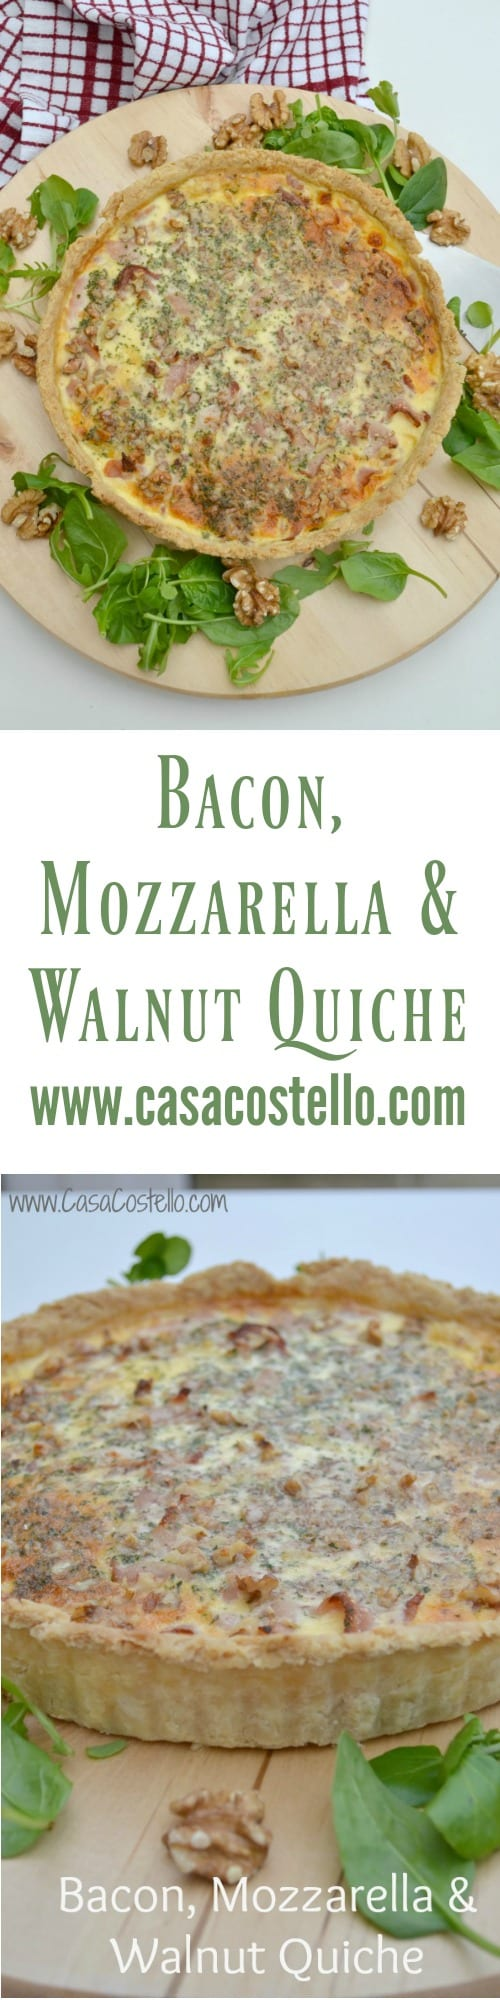 Bacon Mozzarella Walnut Quiche